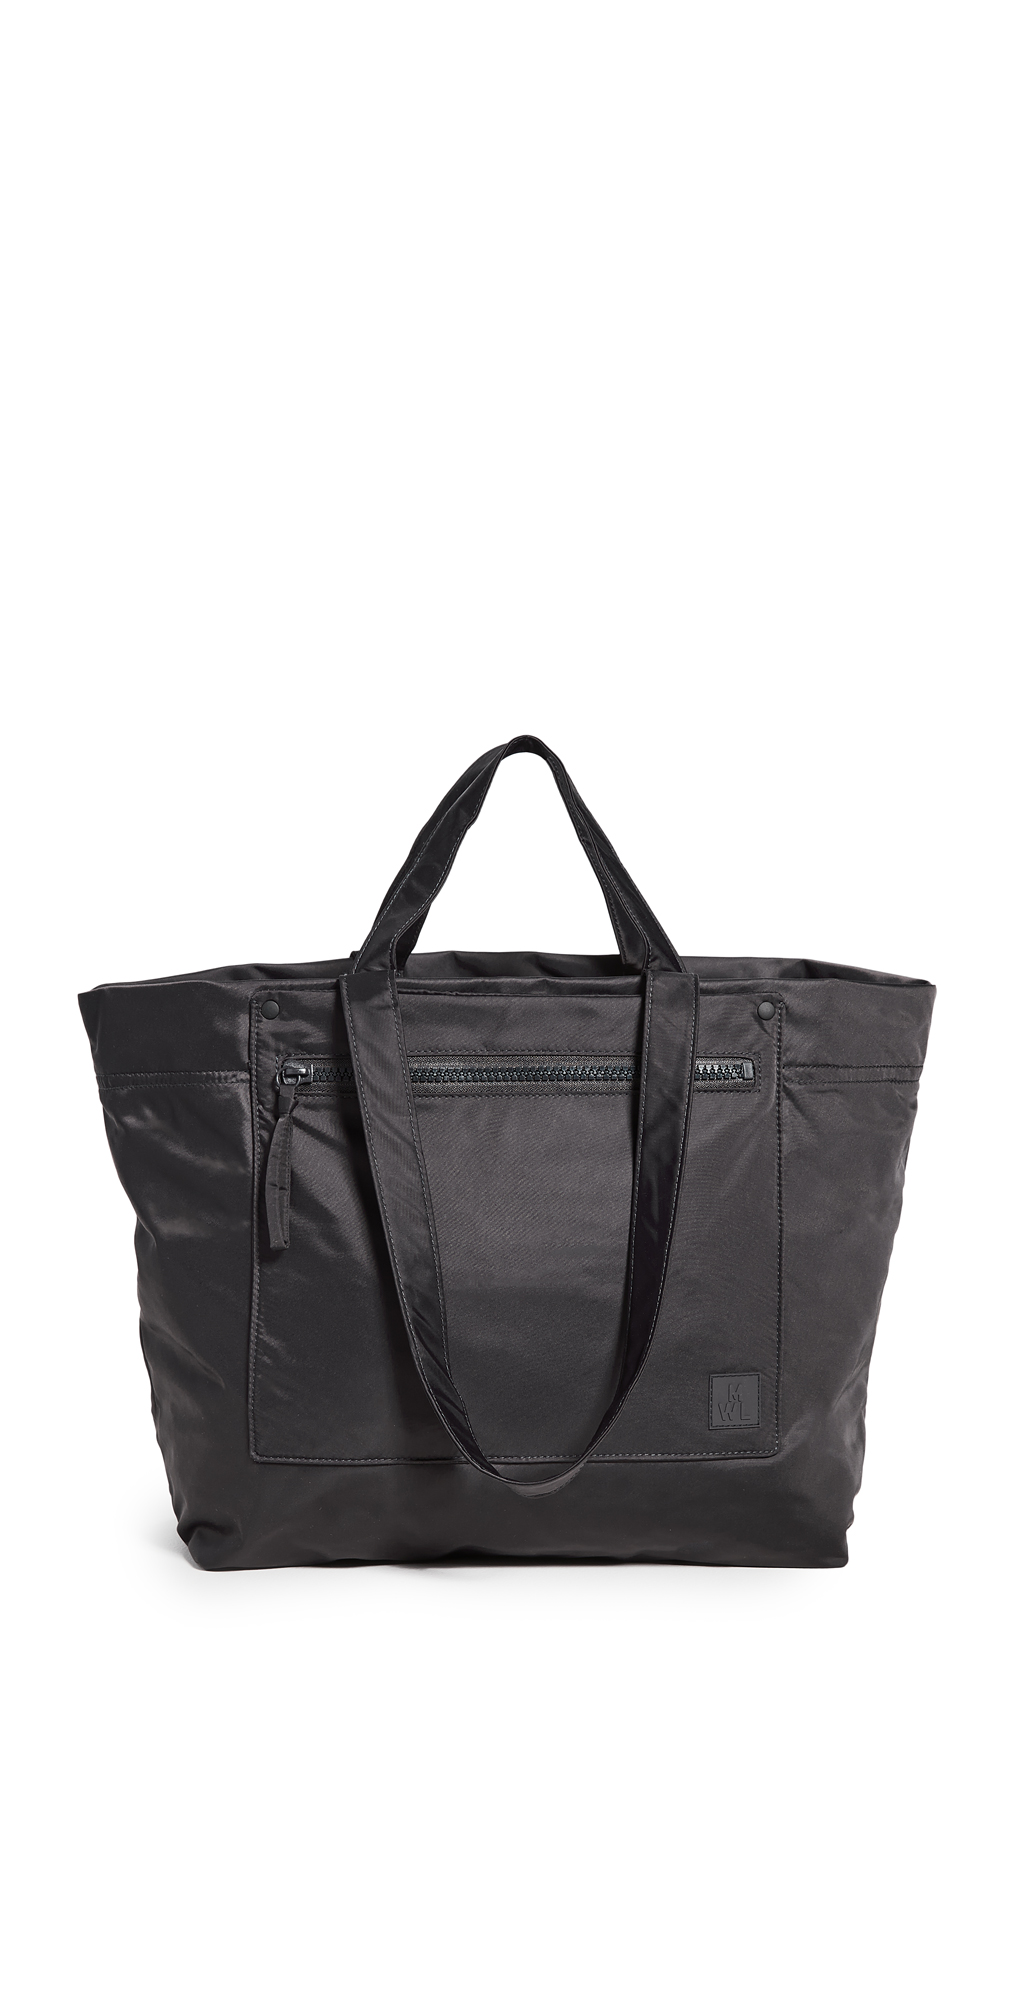 Madewell Travel Nylon Tote